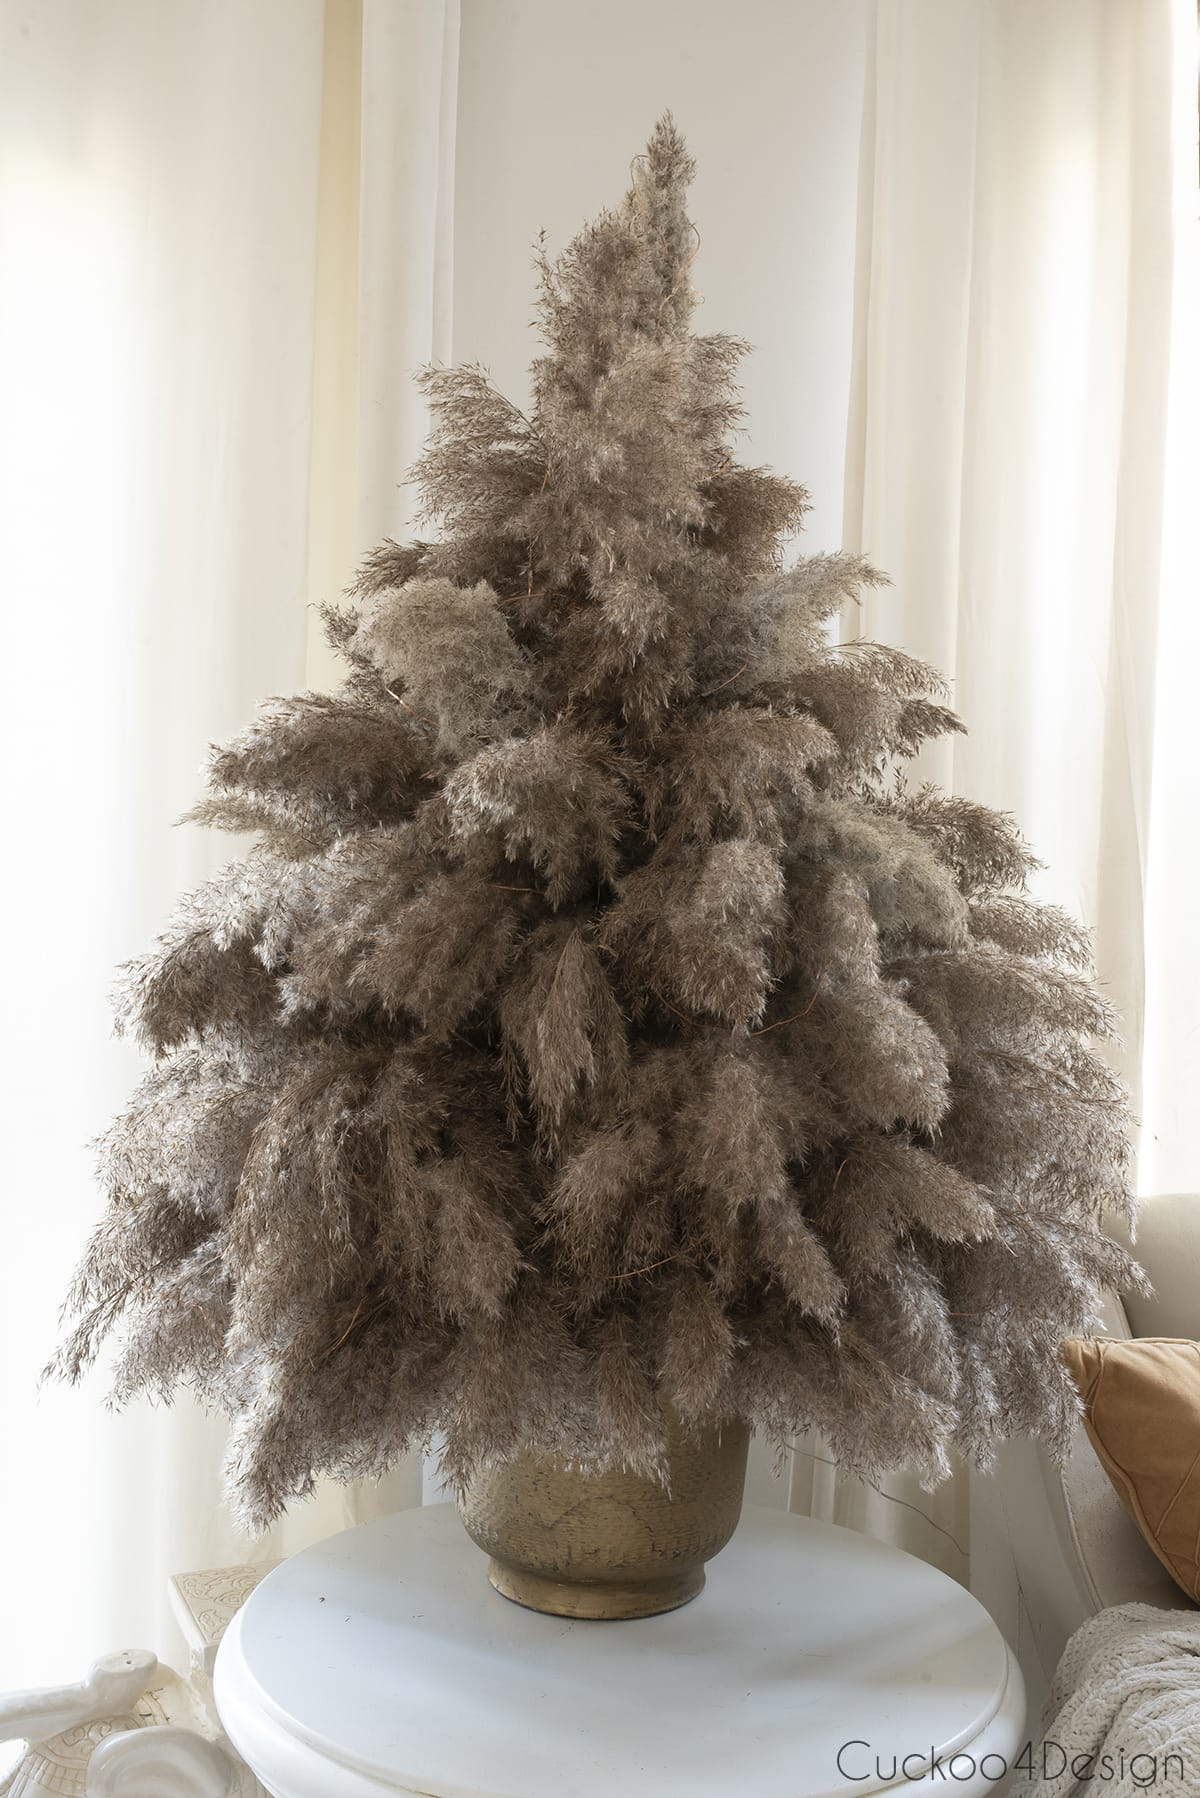 finished pampas grass Christmas tree without lights